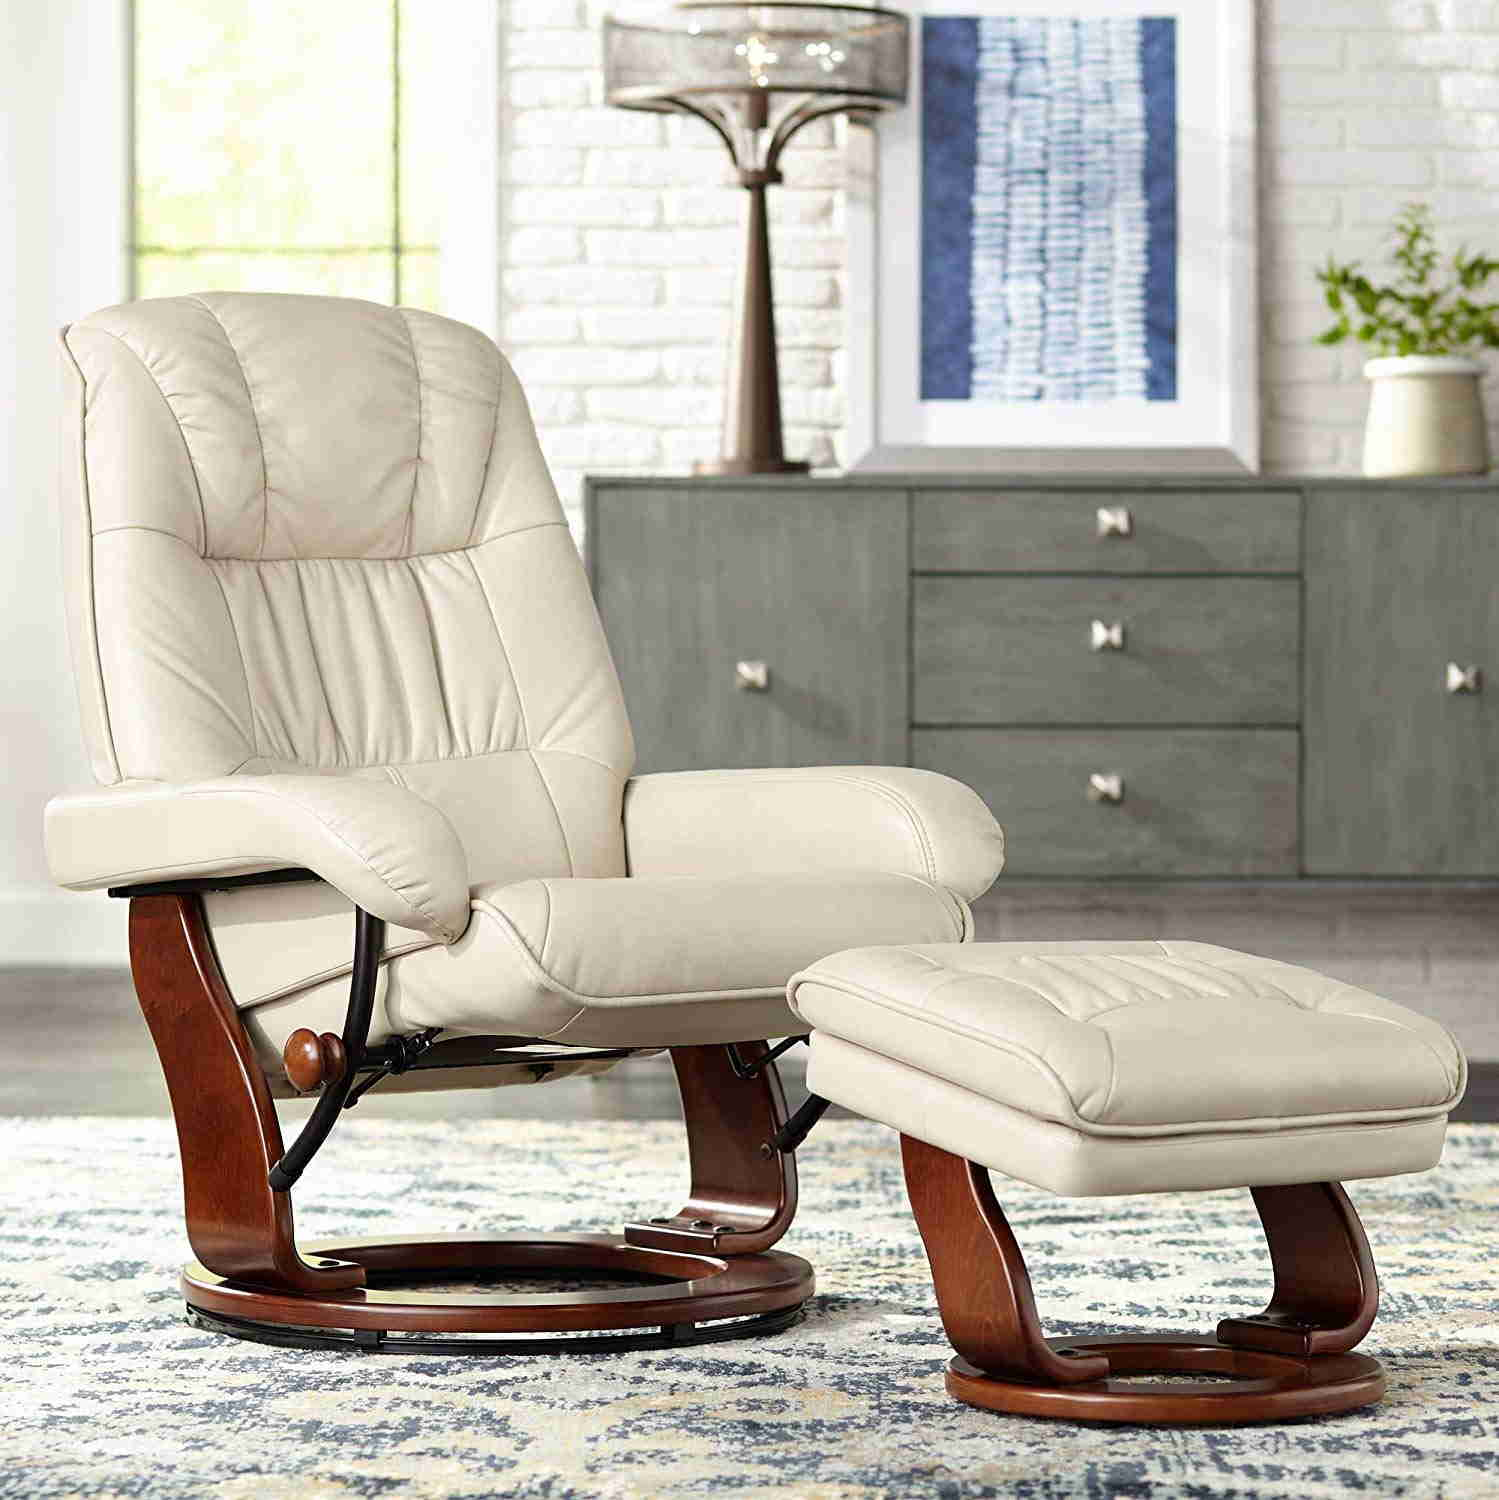 Top 10 Swivel Recliner Chairs With Footstool 2019